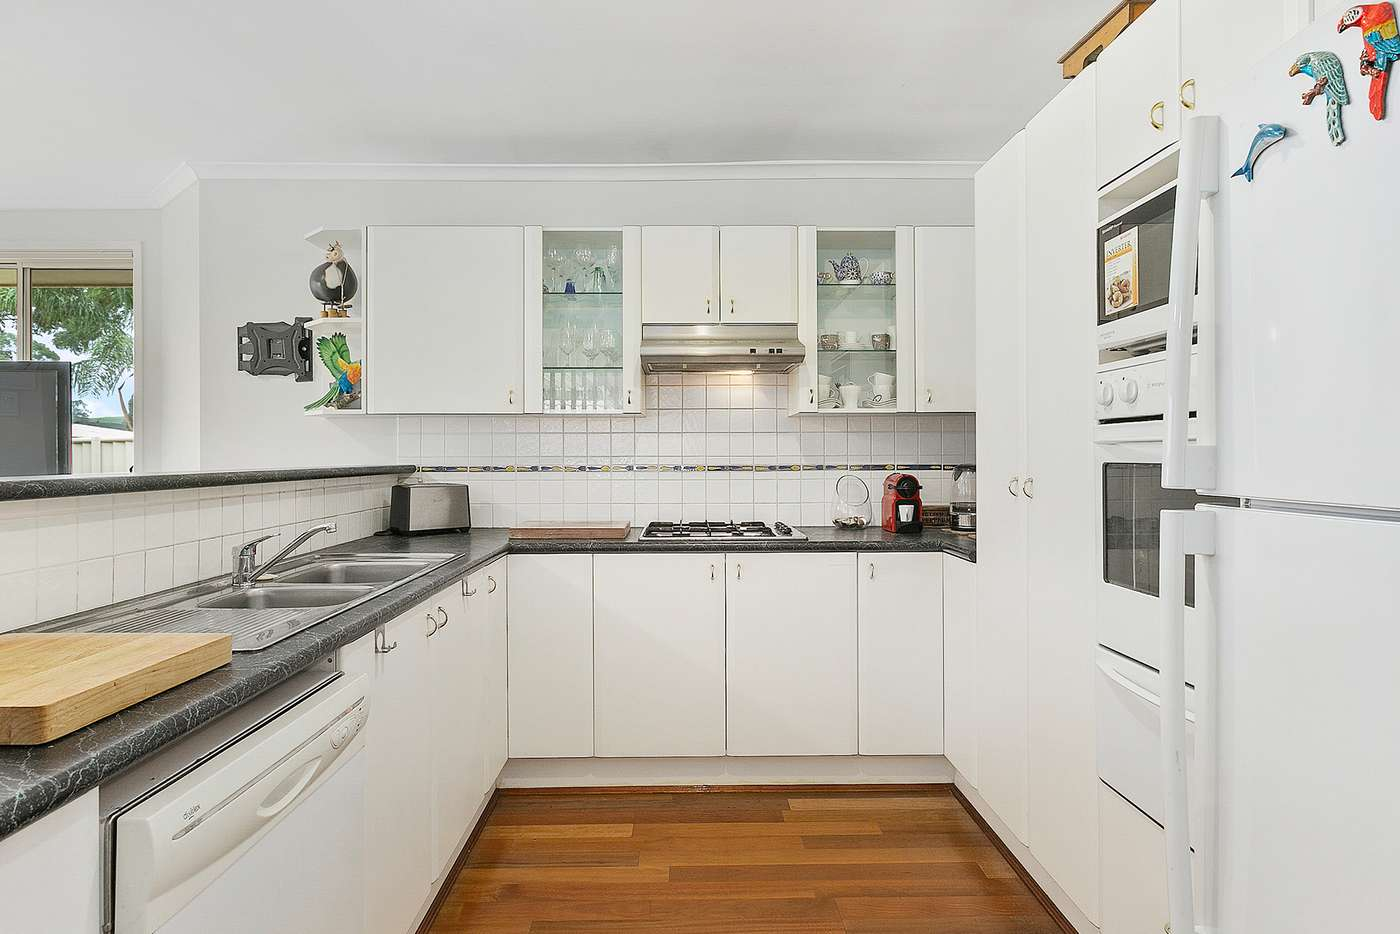 Sixth view of Homely house listing, 46 Paddy Miller Avenue, Currans Hill NSW 2567